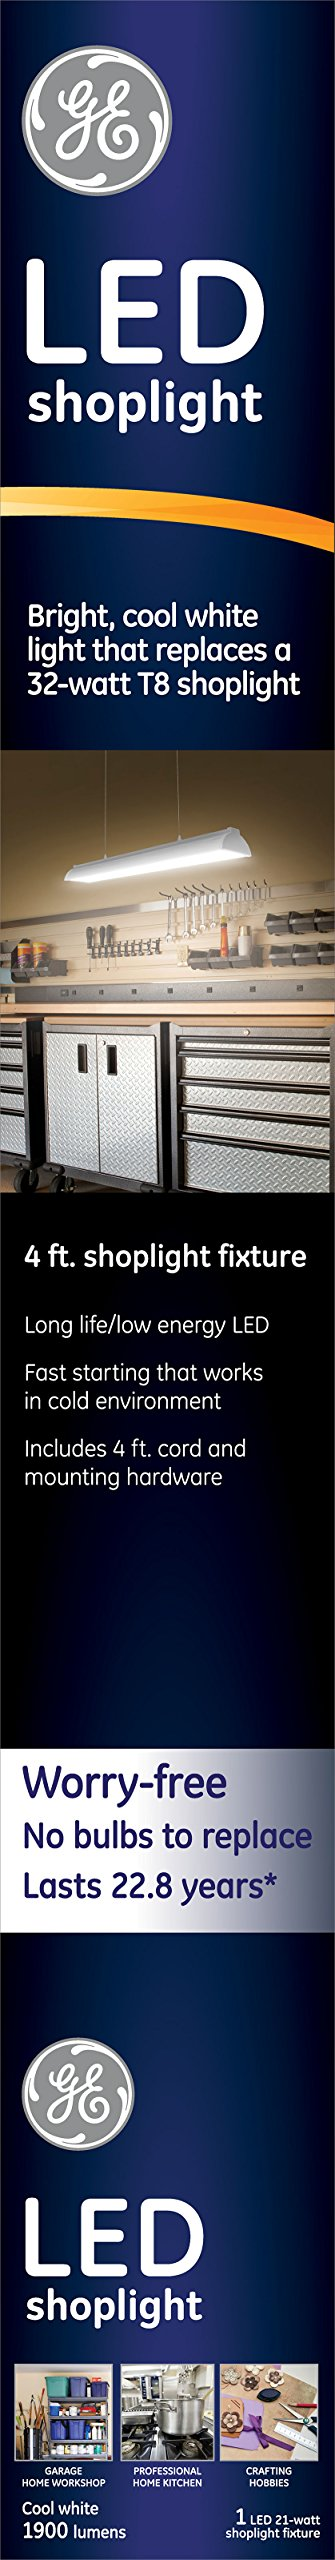 GE Lighting 4-Foot LED Shop Light with Power Cord, Flush Mount, Includes Hanging Accessories, 1900-Lumens, Cool-White